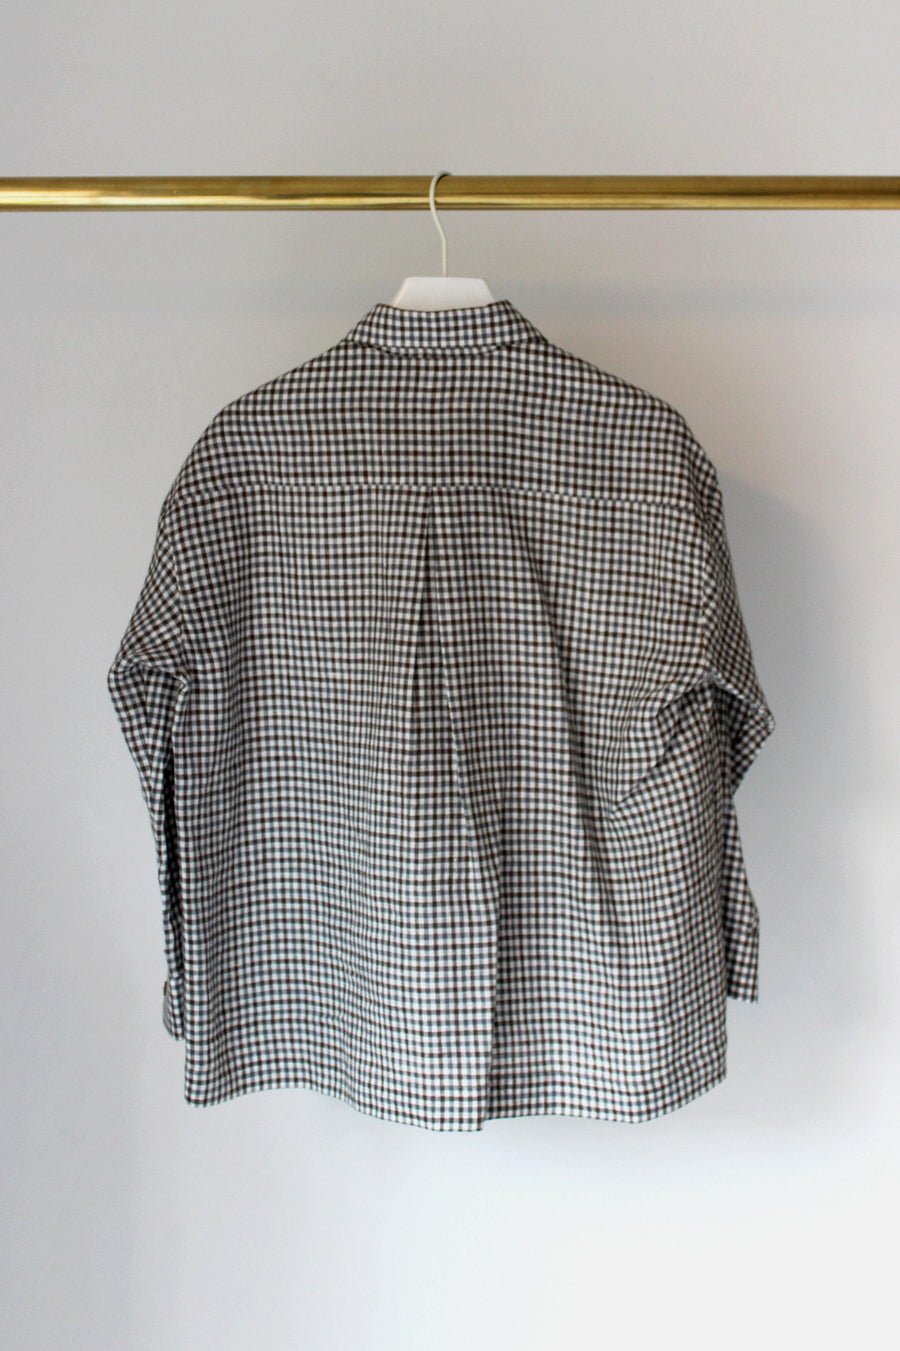 31 CHAPEL LANE Blouse